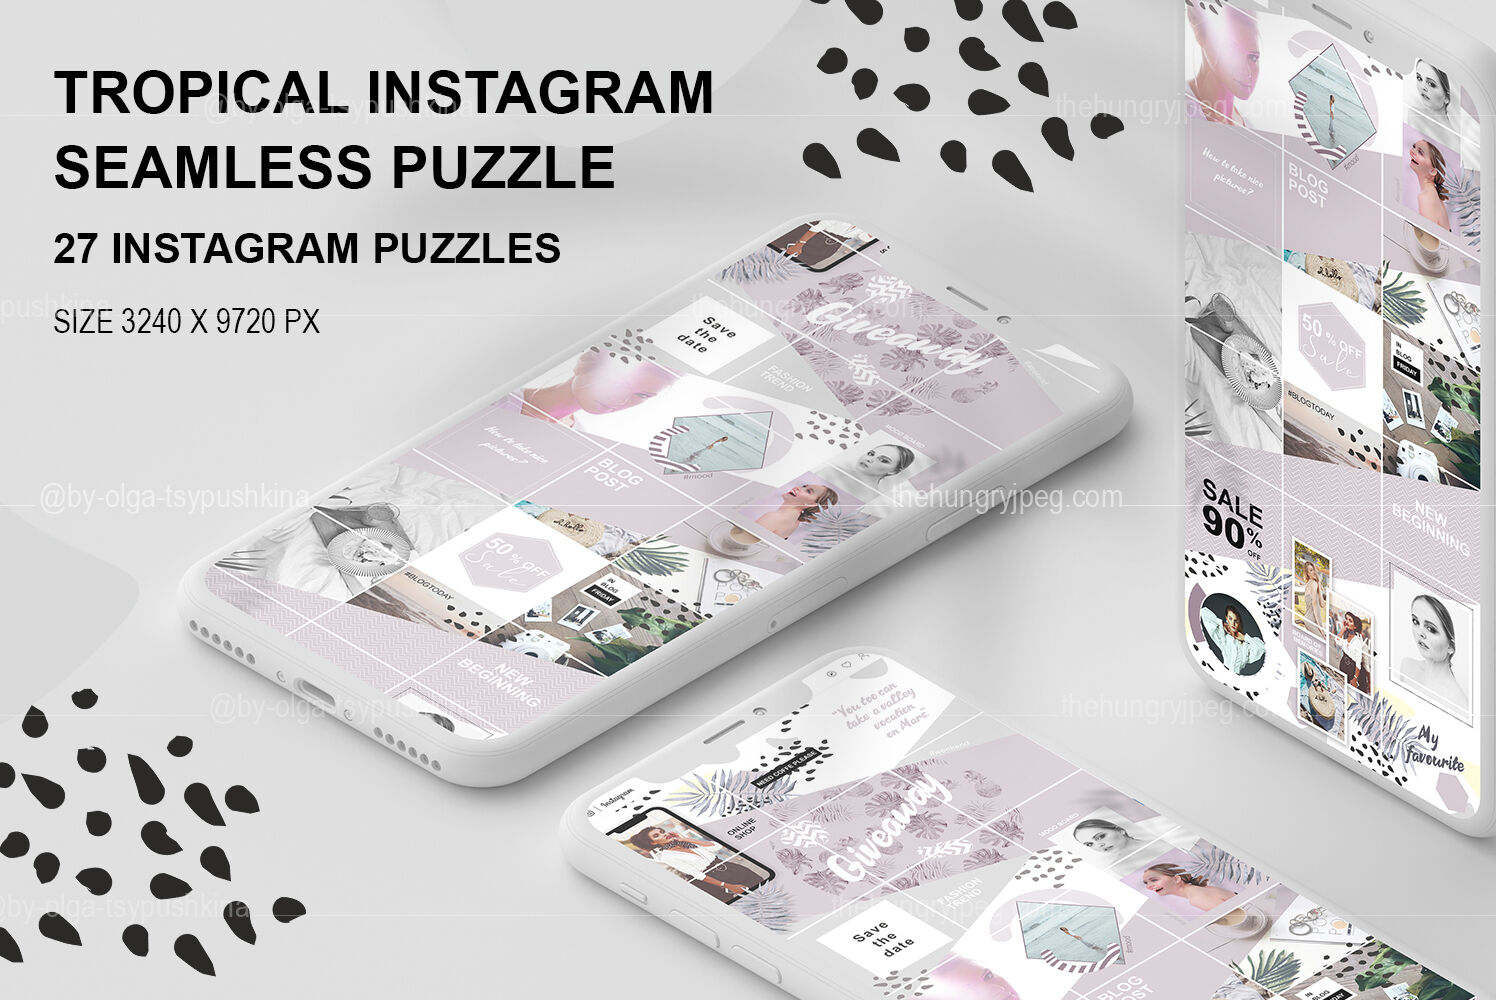 Tropical Instagram Seamless Puzzle By By Olga Tsypushkina